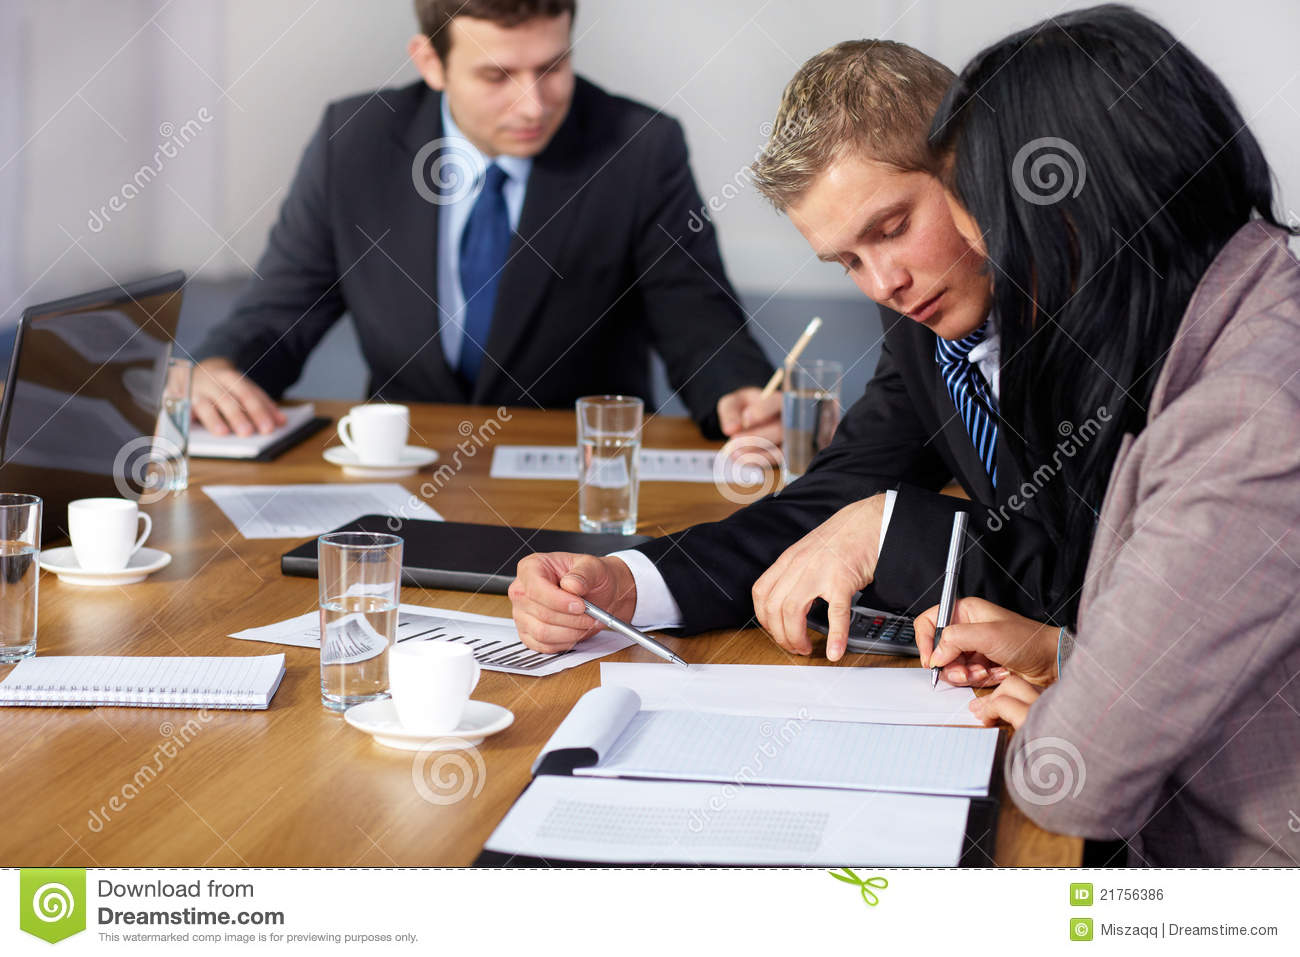 Team of 3 business people working on calculations